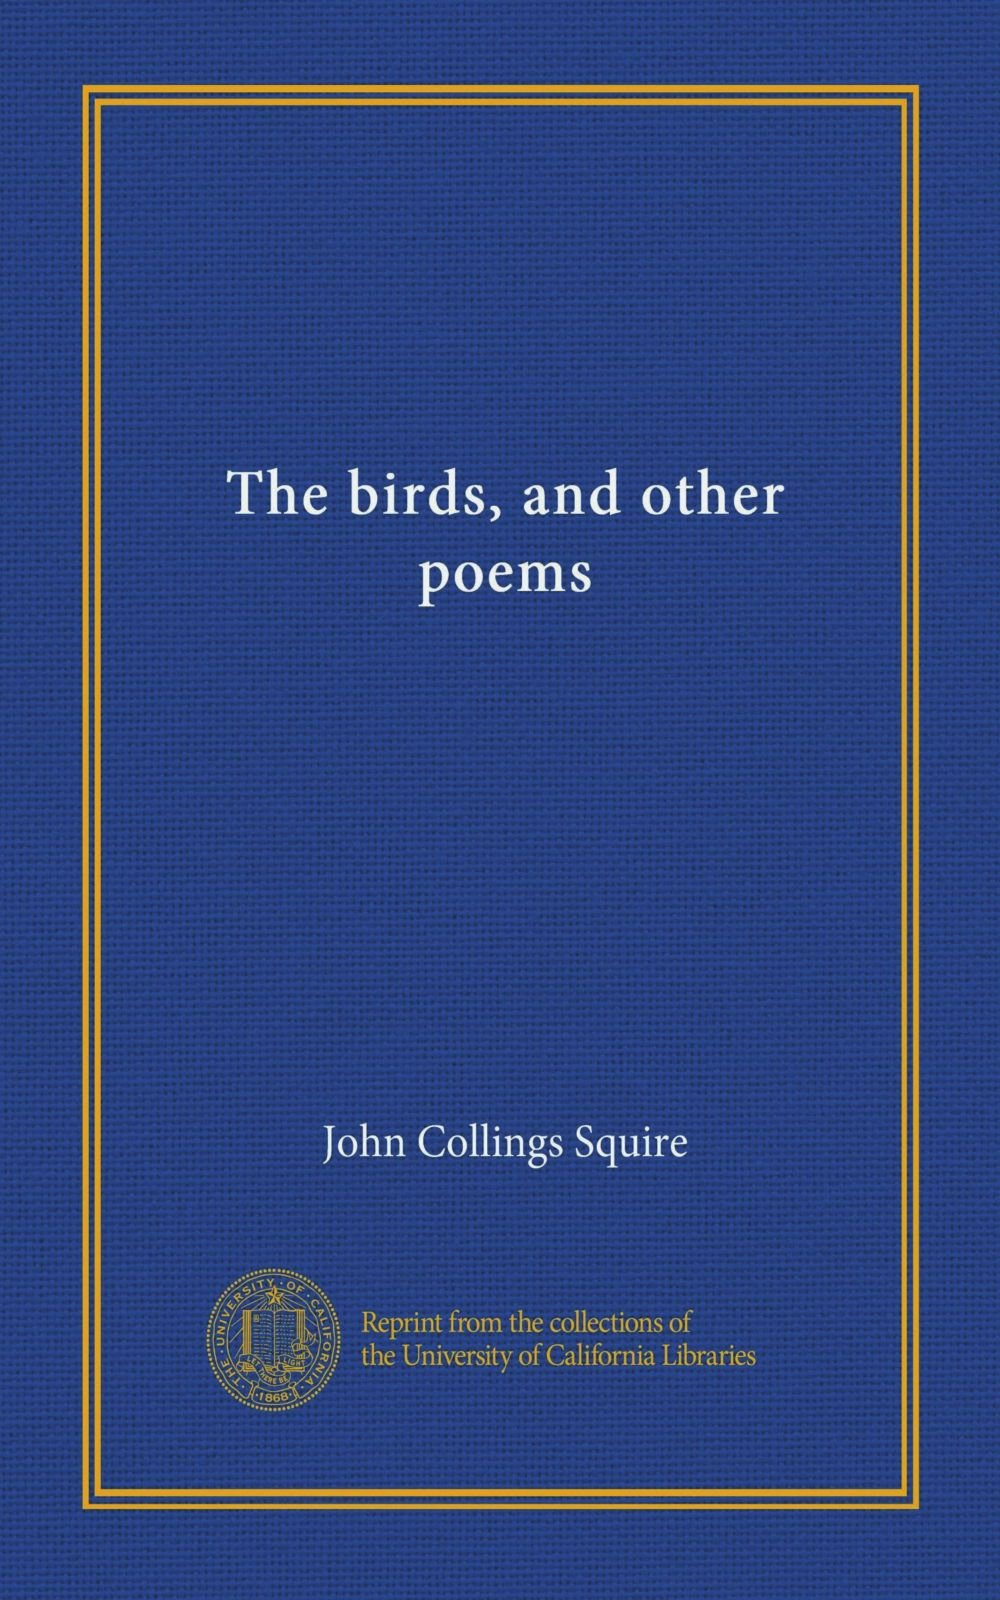 The birds, and other poems pdf